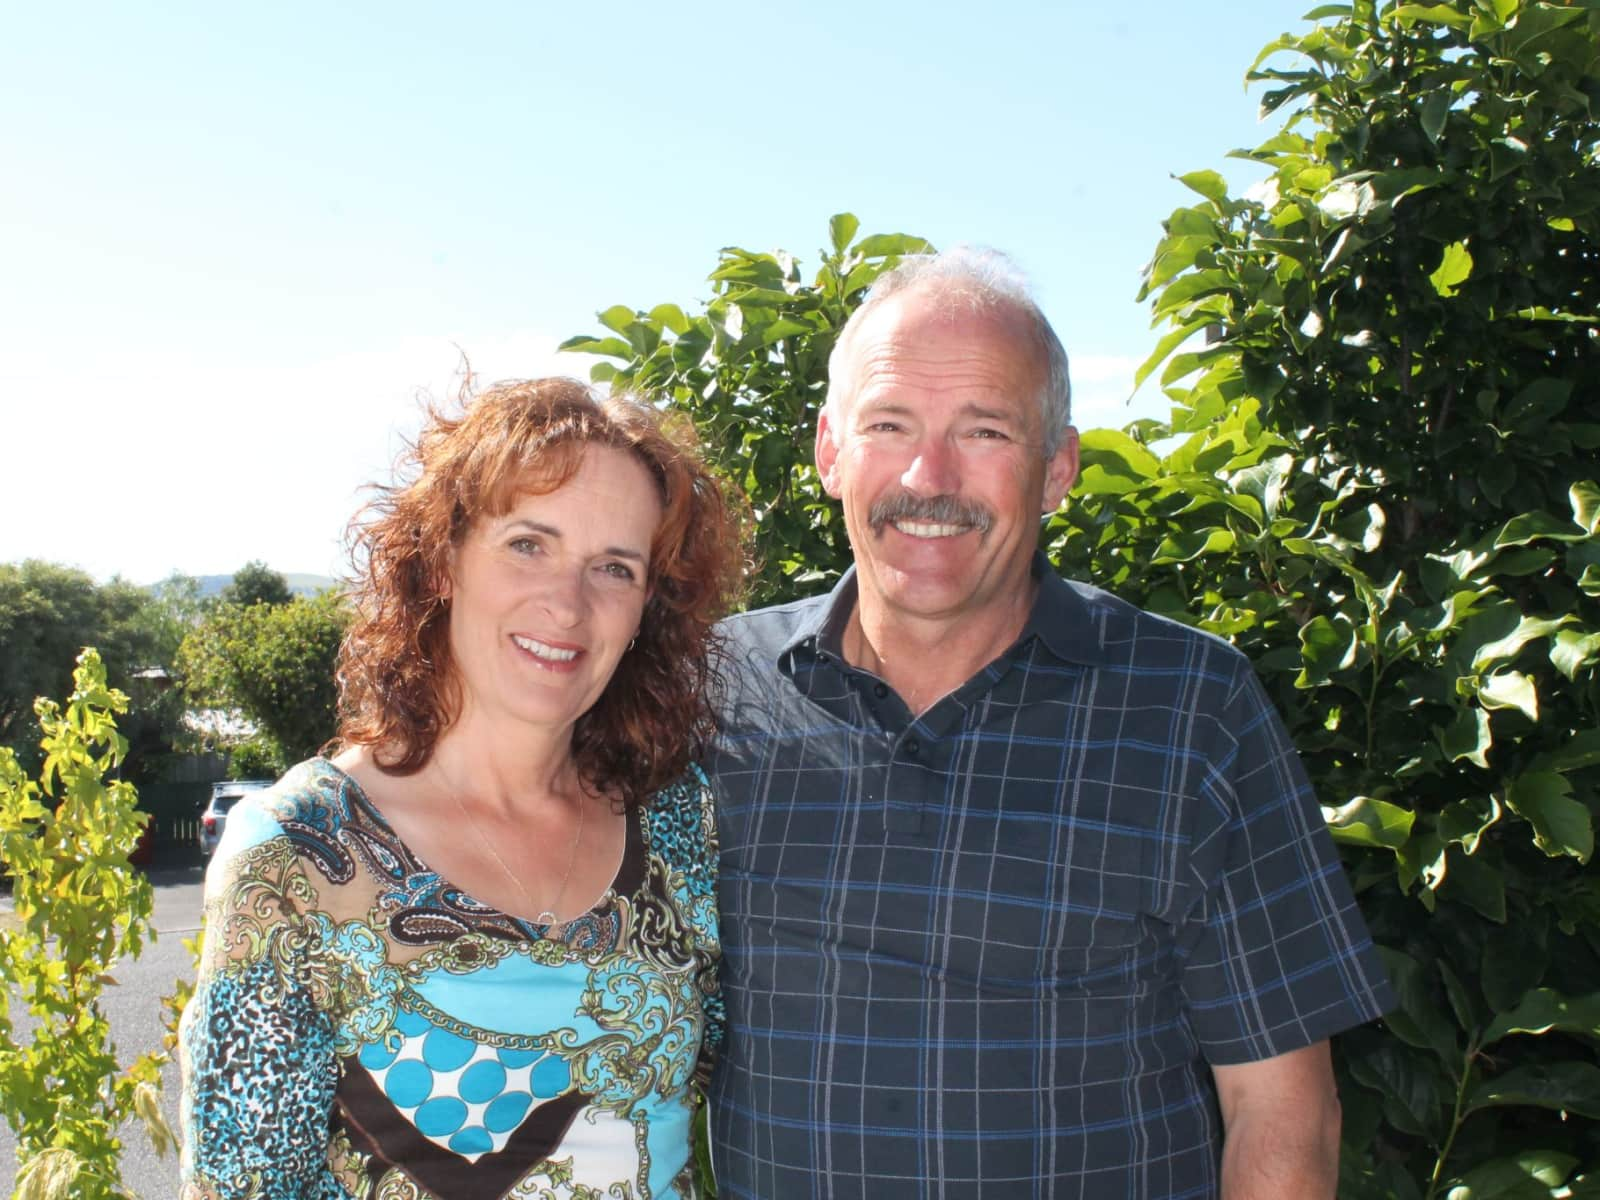 Chrissy & Steve from Taupo, New Zealand